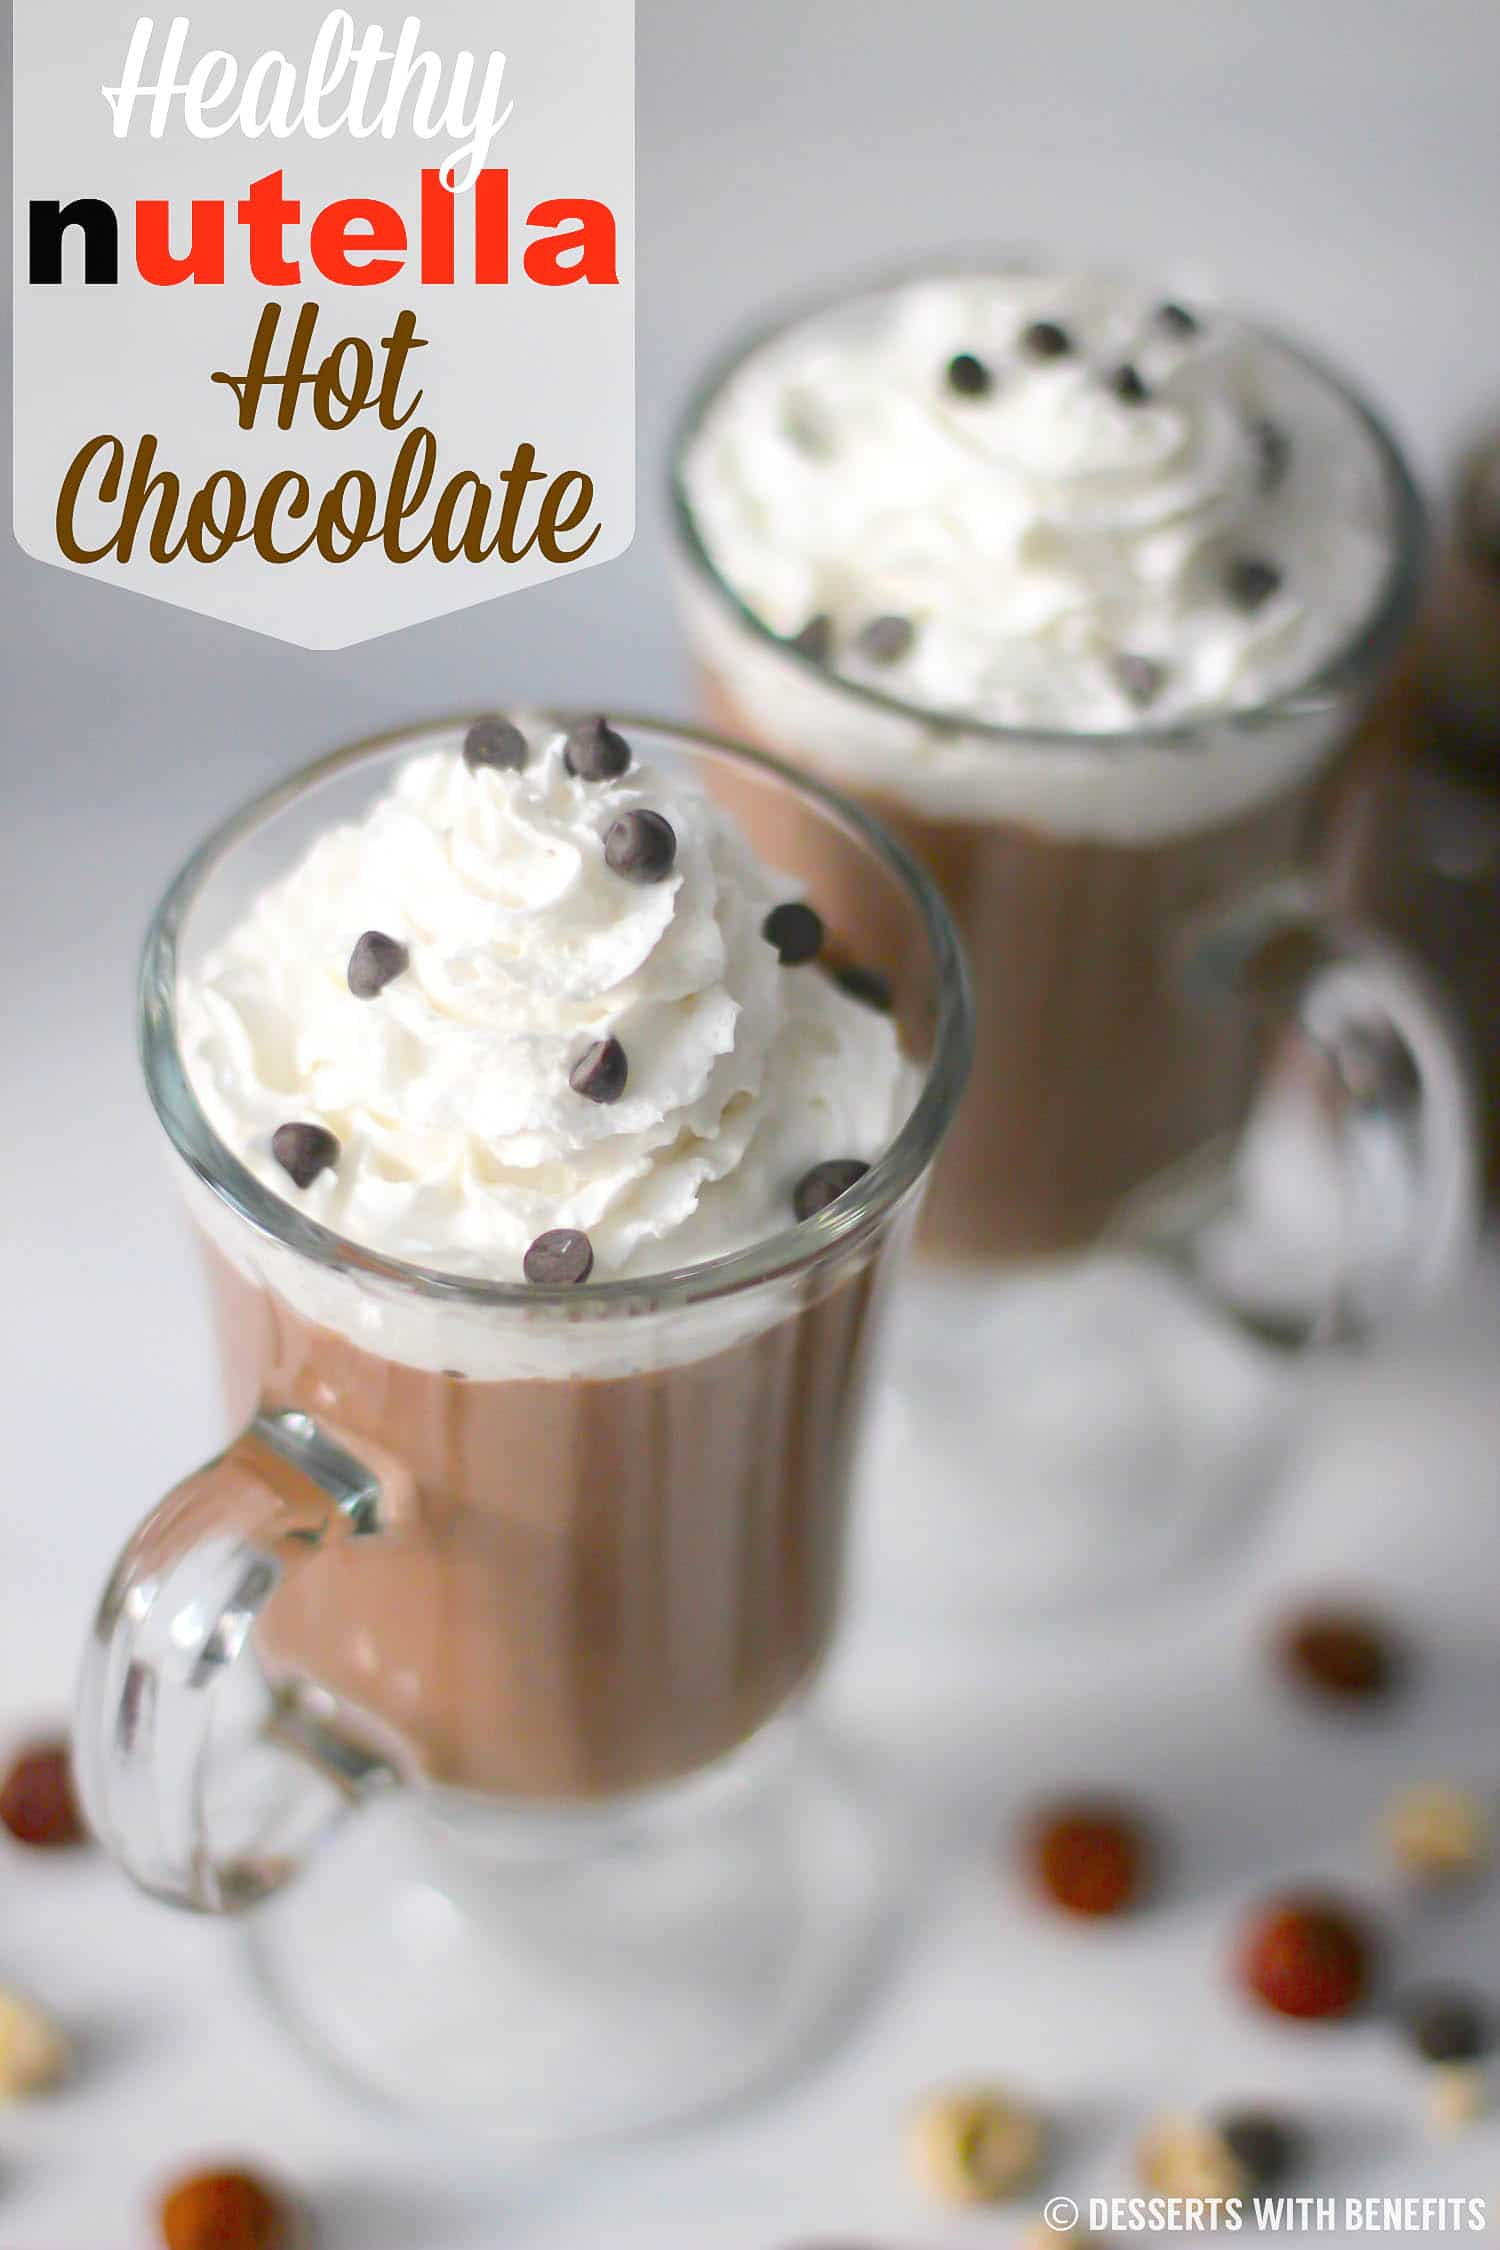 This 4-ingredient Healthy Nutella Hot Chocolate is sweet, rich, and comforting, you'd never know it's sugar free, low carb, paleo, keto-friendly, dairy free and vegan!